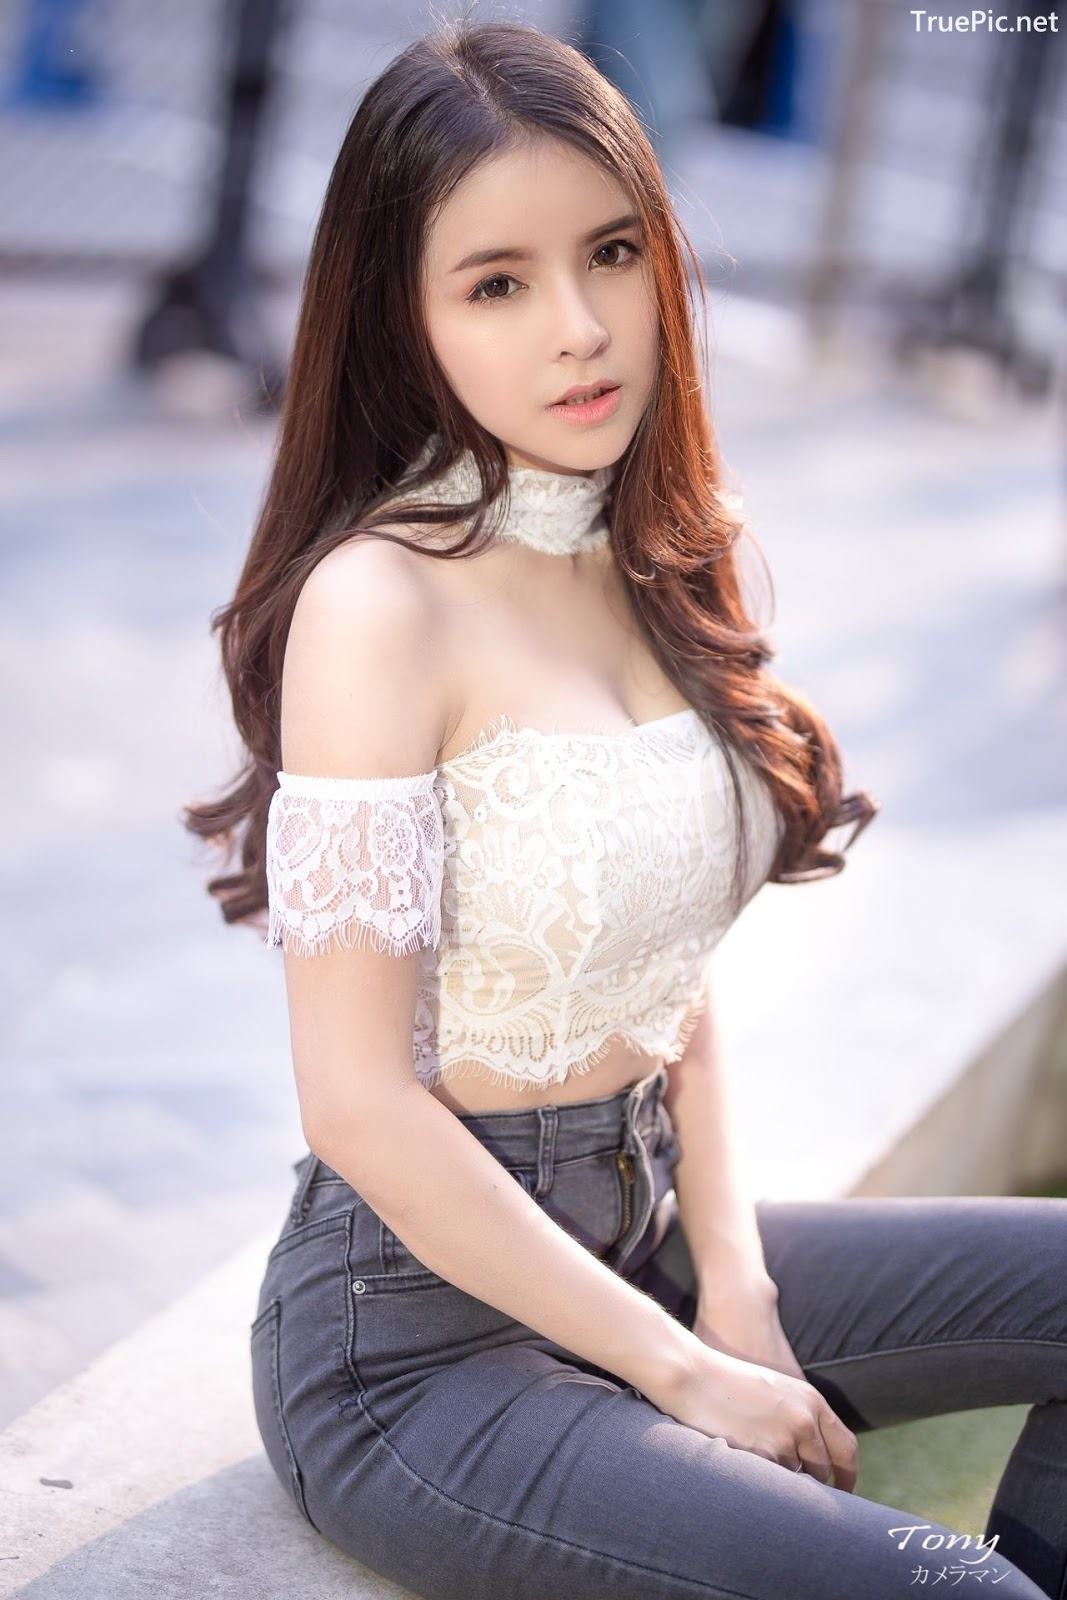 Image-Thailand-Beautiful-Model-Soithip-Palwongpaisal-Transparent-Lace-Crop-Top-And-Jean-TruePic.net- Picture-10